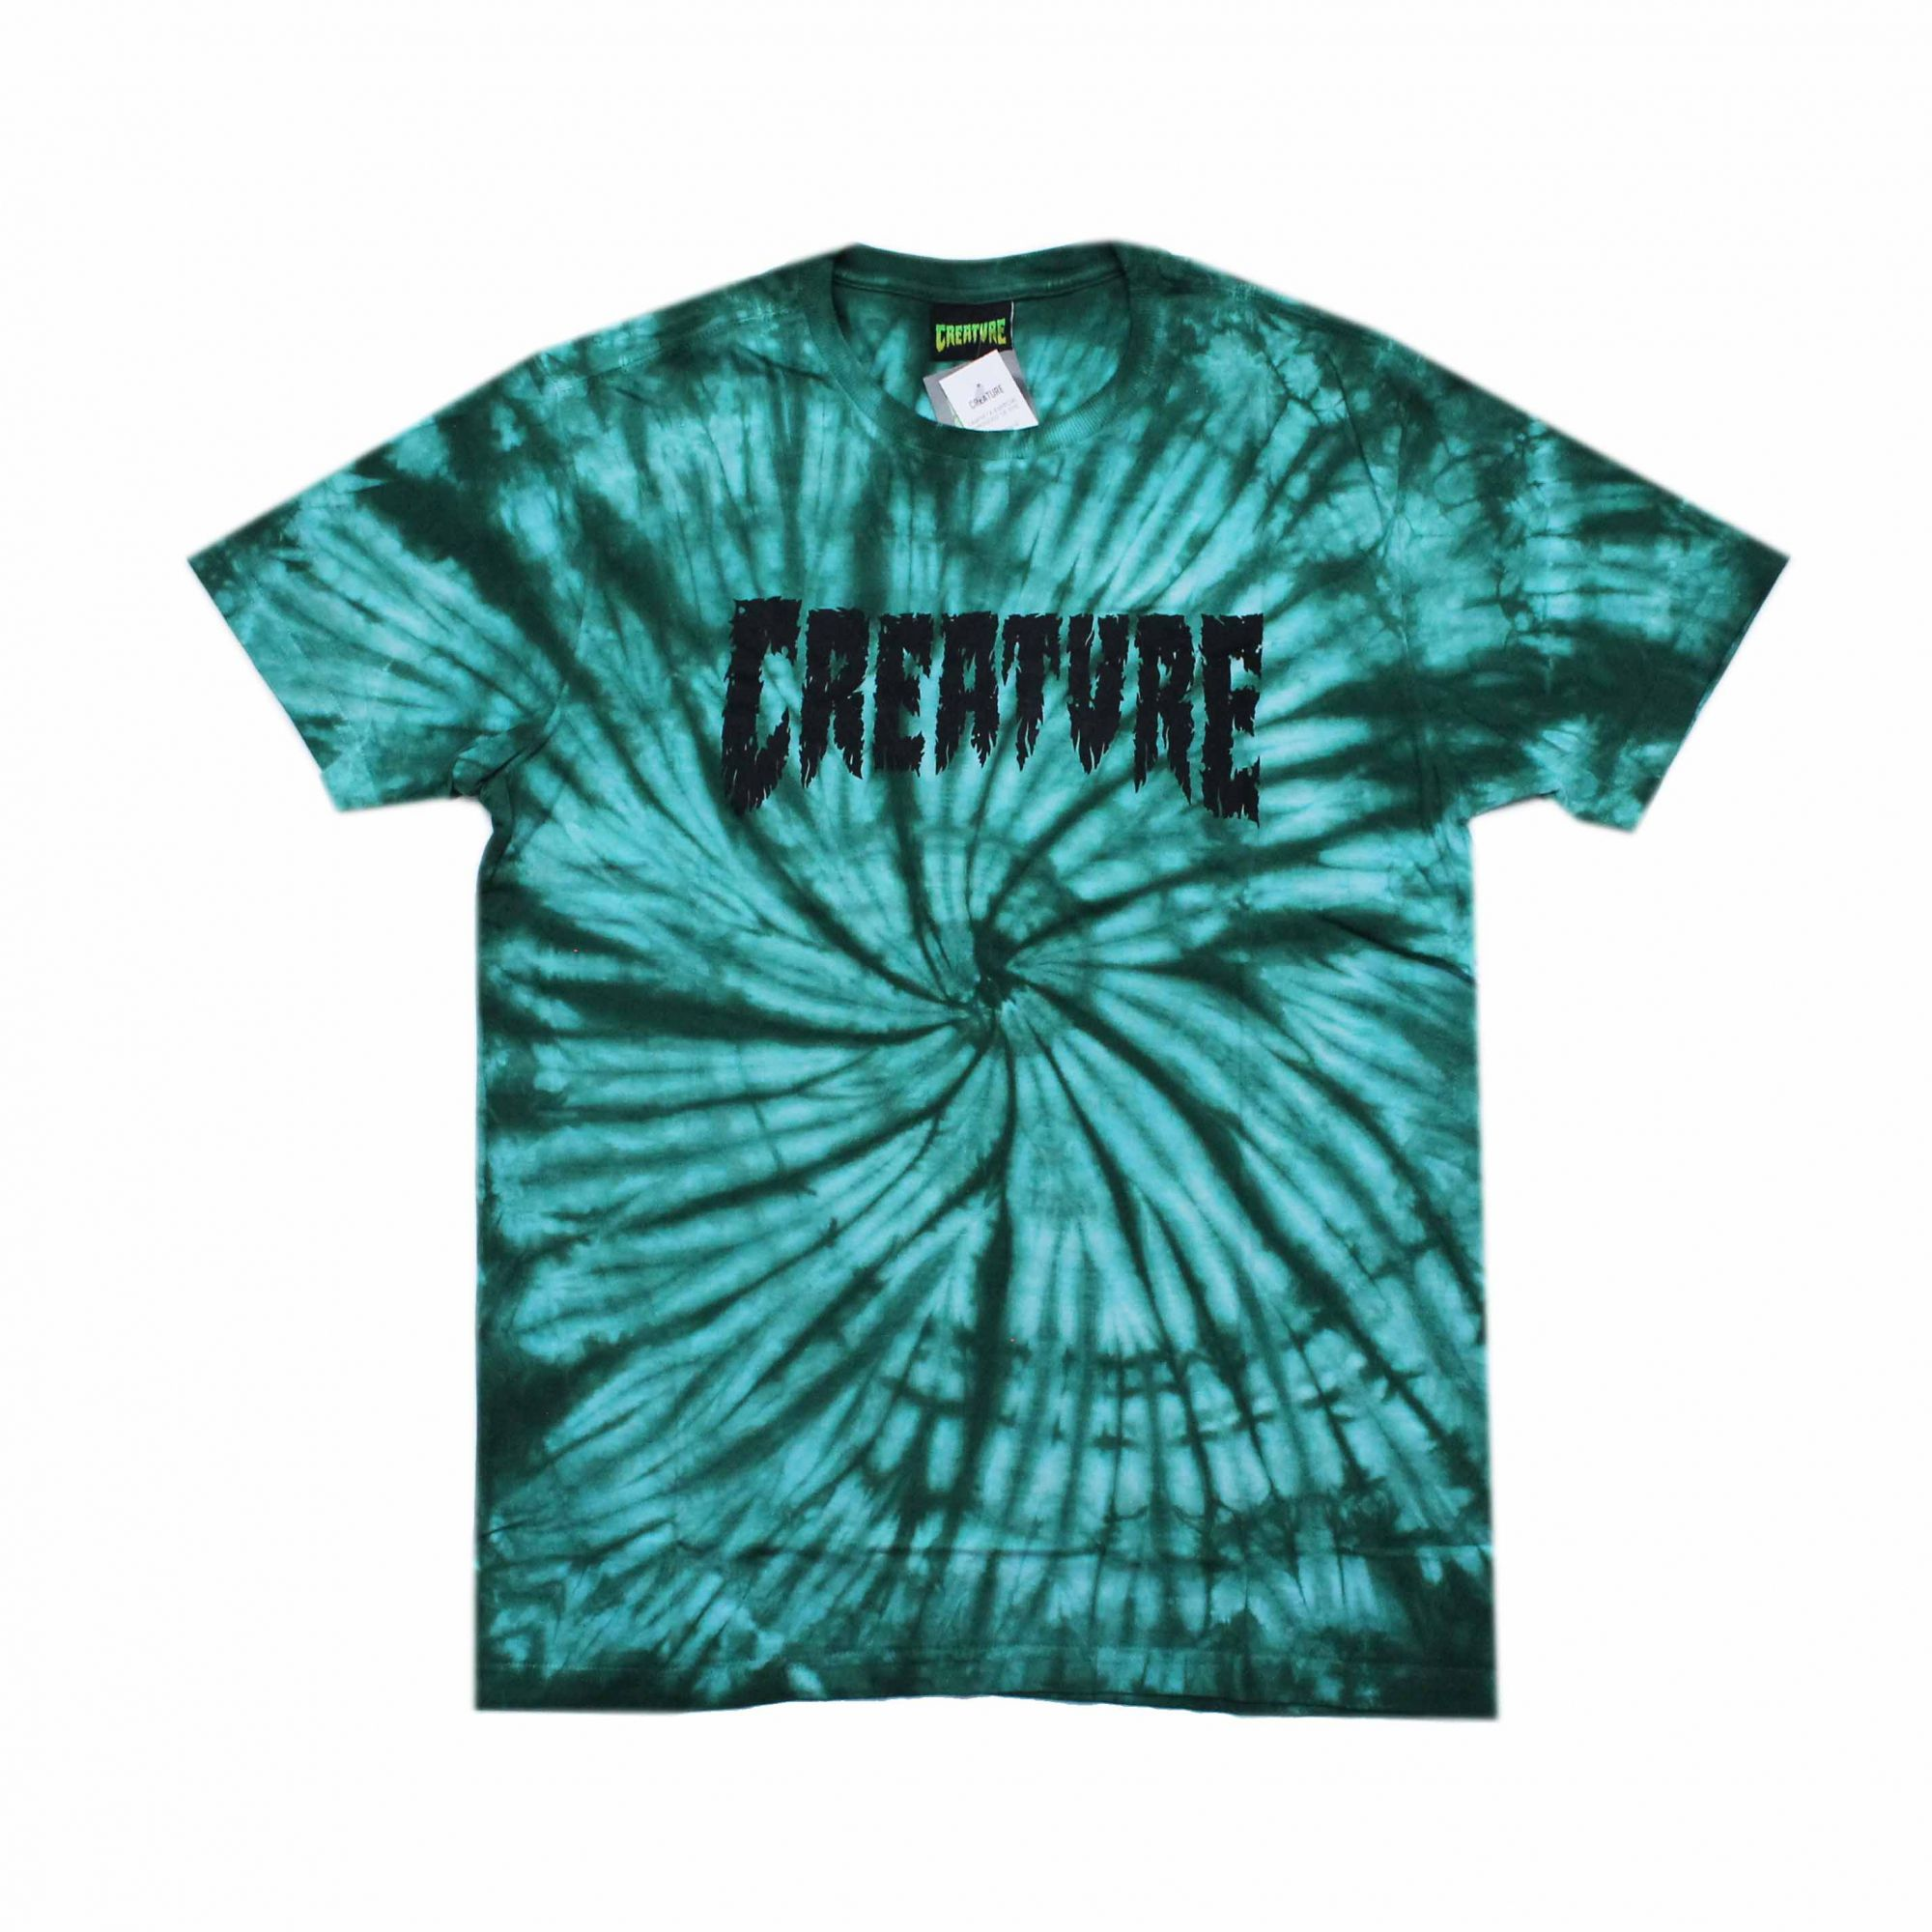 Camiseta Creature Shredded Tie Dye Verde